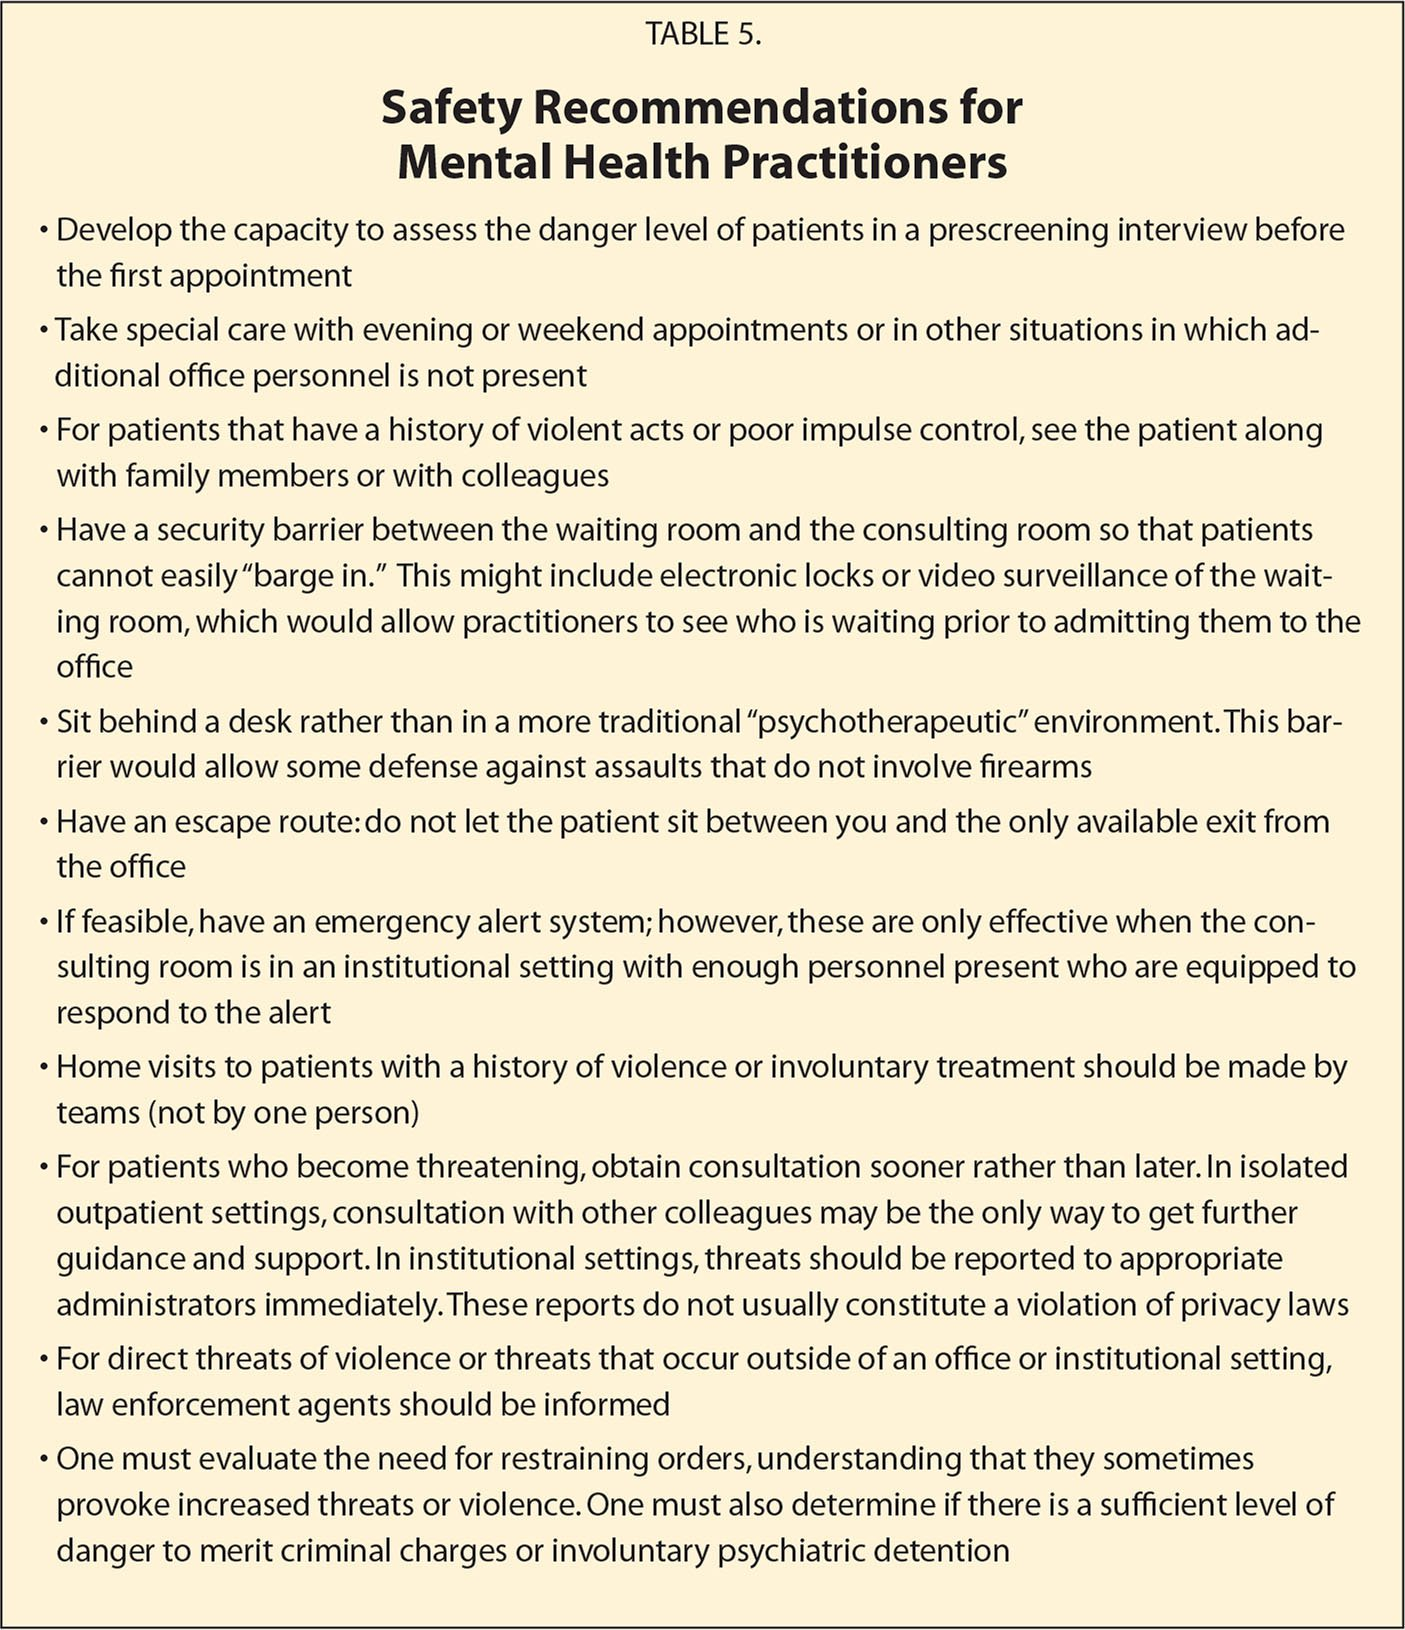 Safety Recommendations for Mental Health Practitioners